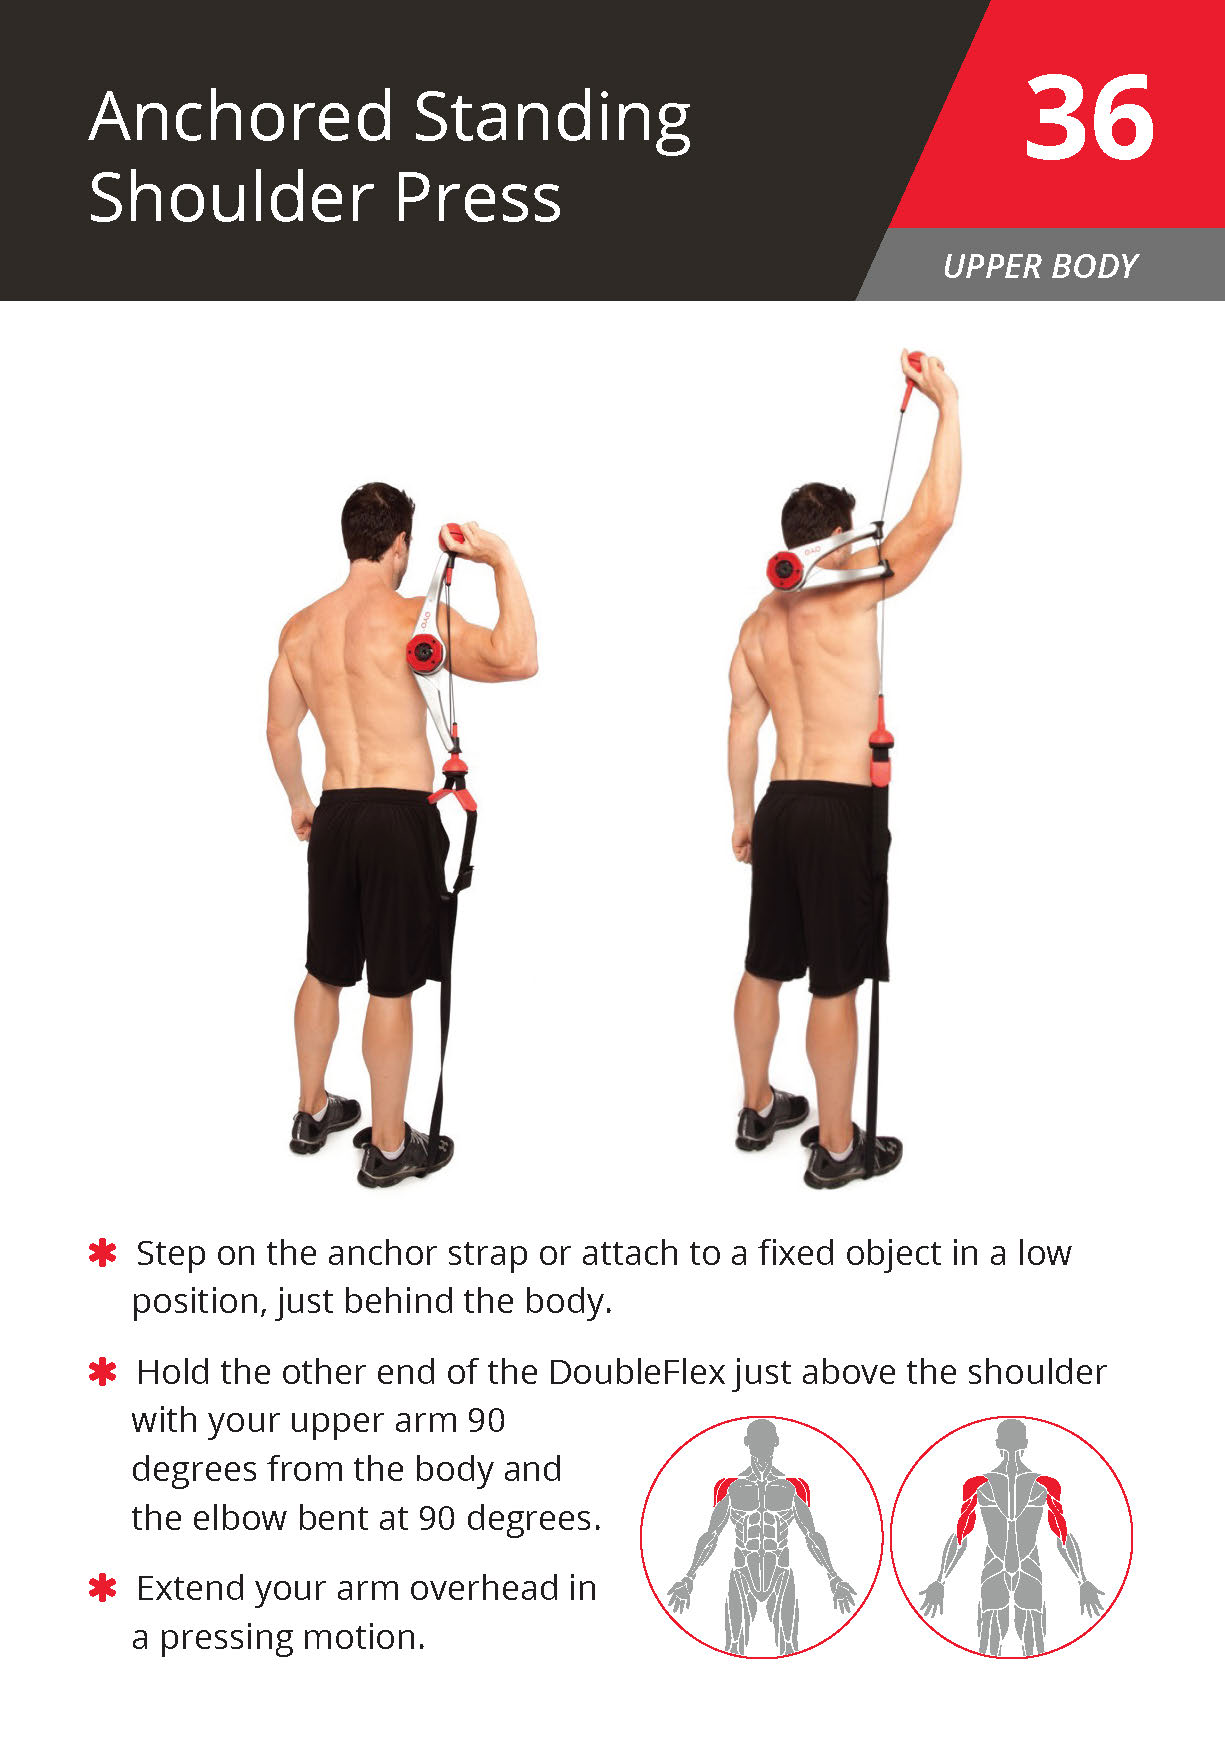 36 Anchored Standing Shoulder Press